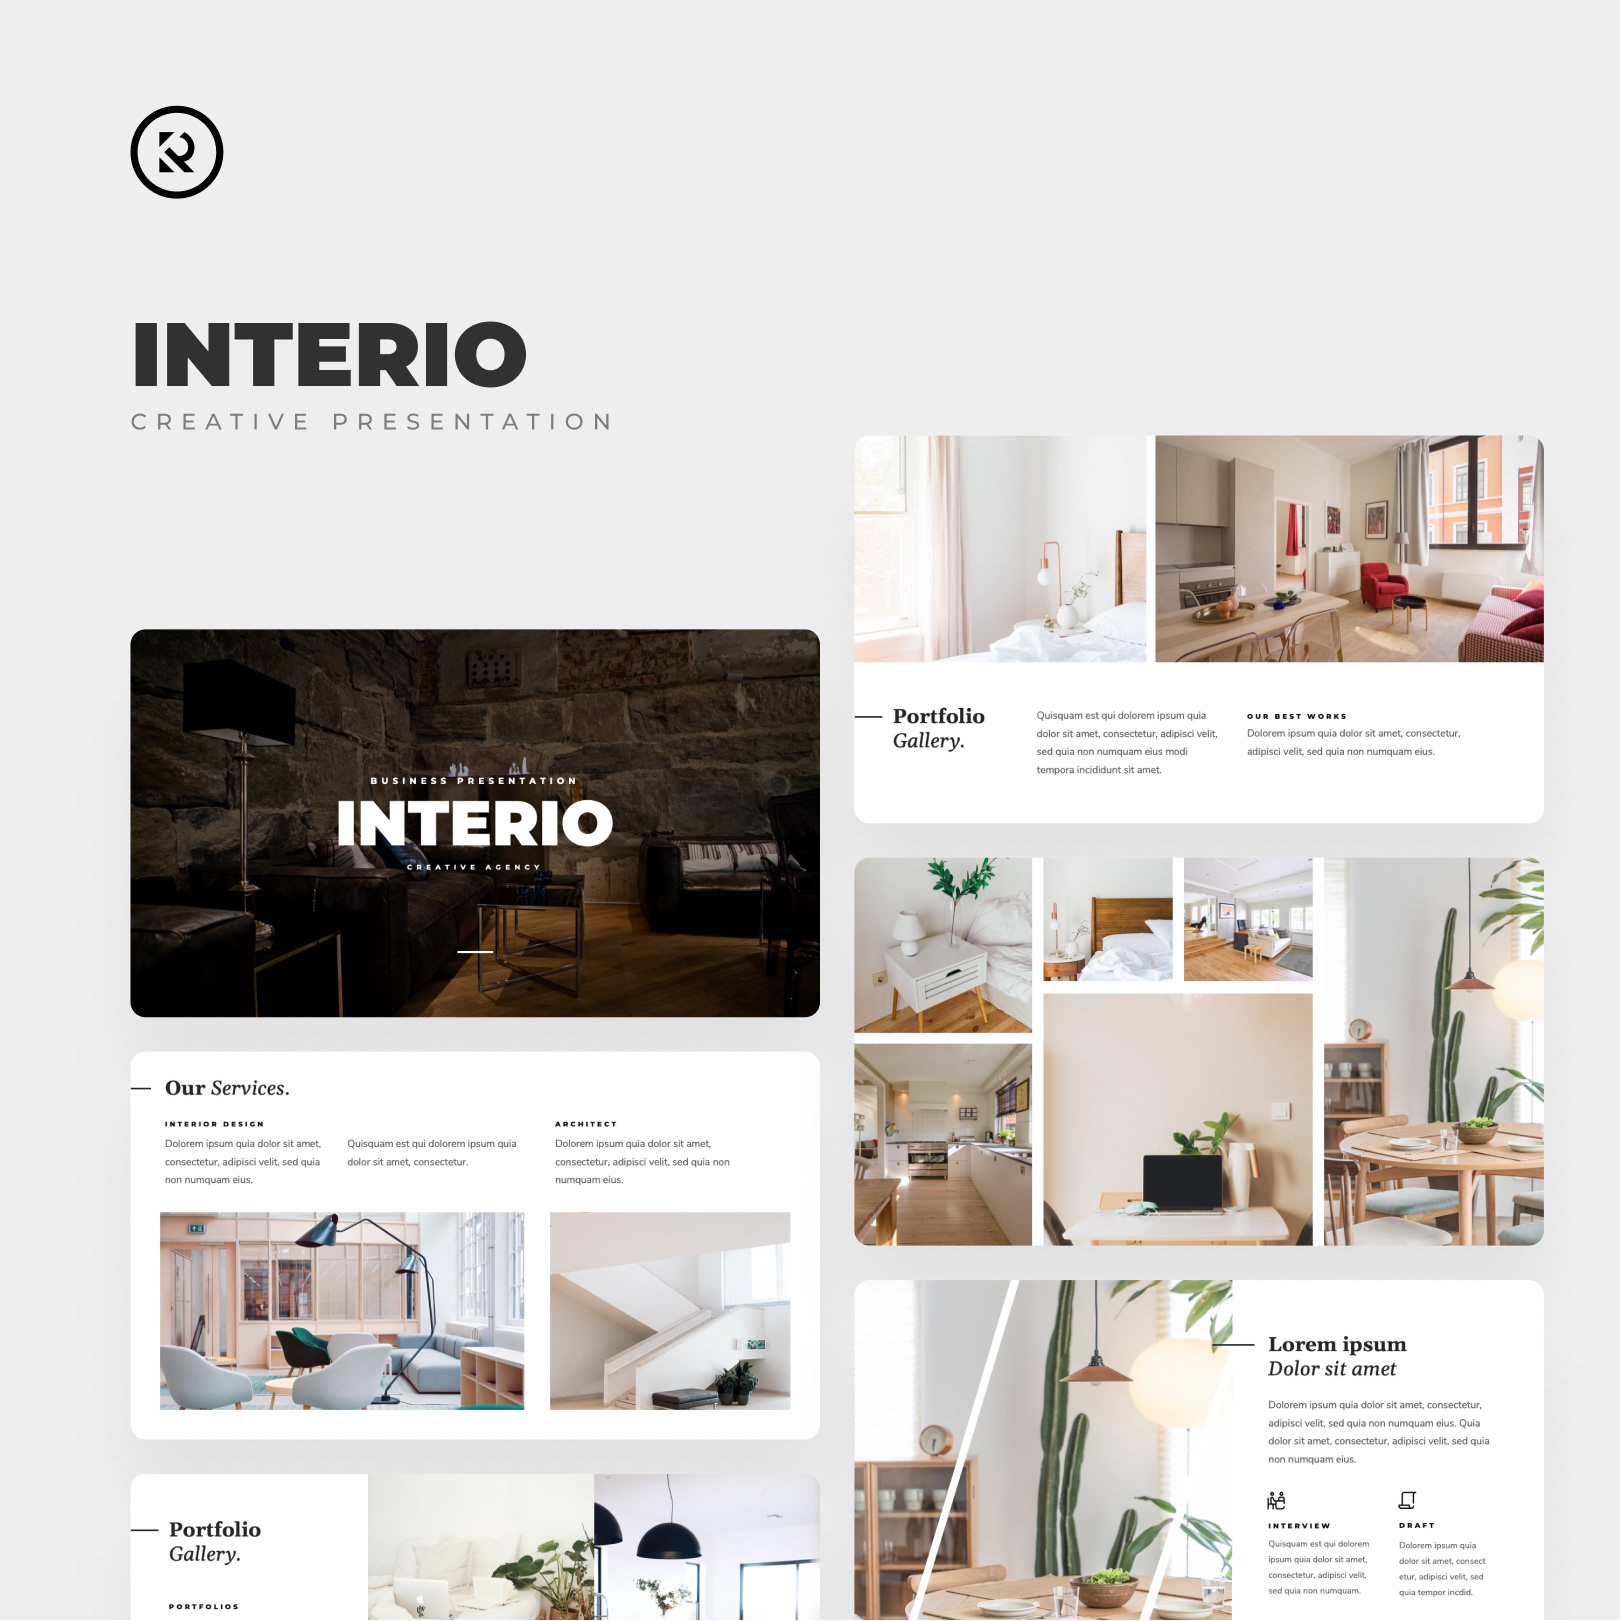 Interio Creative Interior Design Powerpoint Template By Mhudaaa Graphicriver